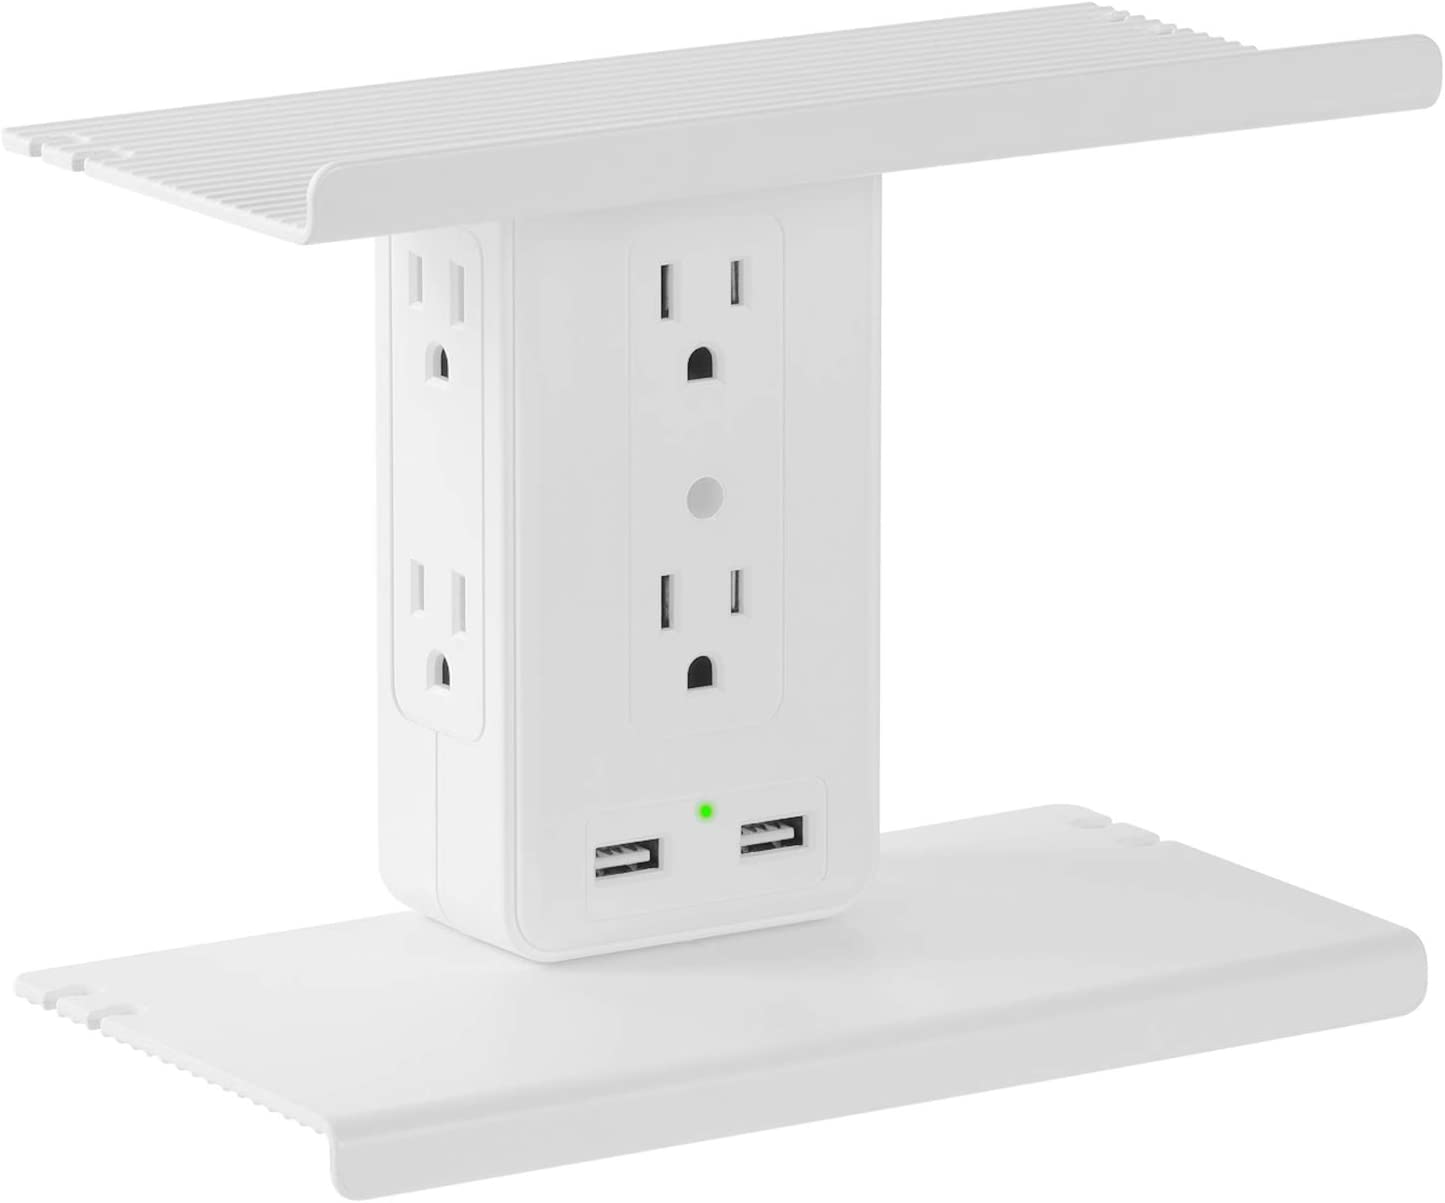 Wall Outlet Shelf - REXIAO 8 Port Socket Organizer Wall Surge Protector, 6 Electrical Outlet Extenders, 2 Usb Charging Ports, Small Multi Plug Outlet Shelf with Usb Ports